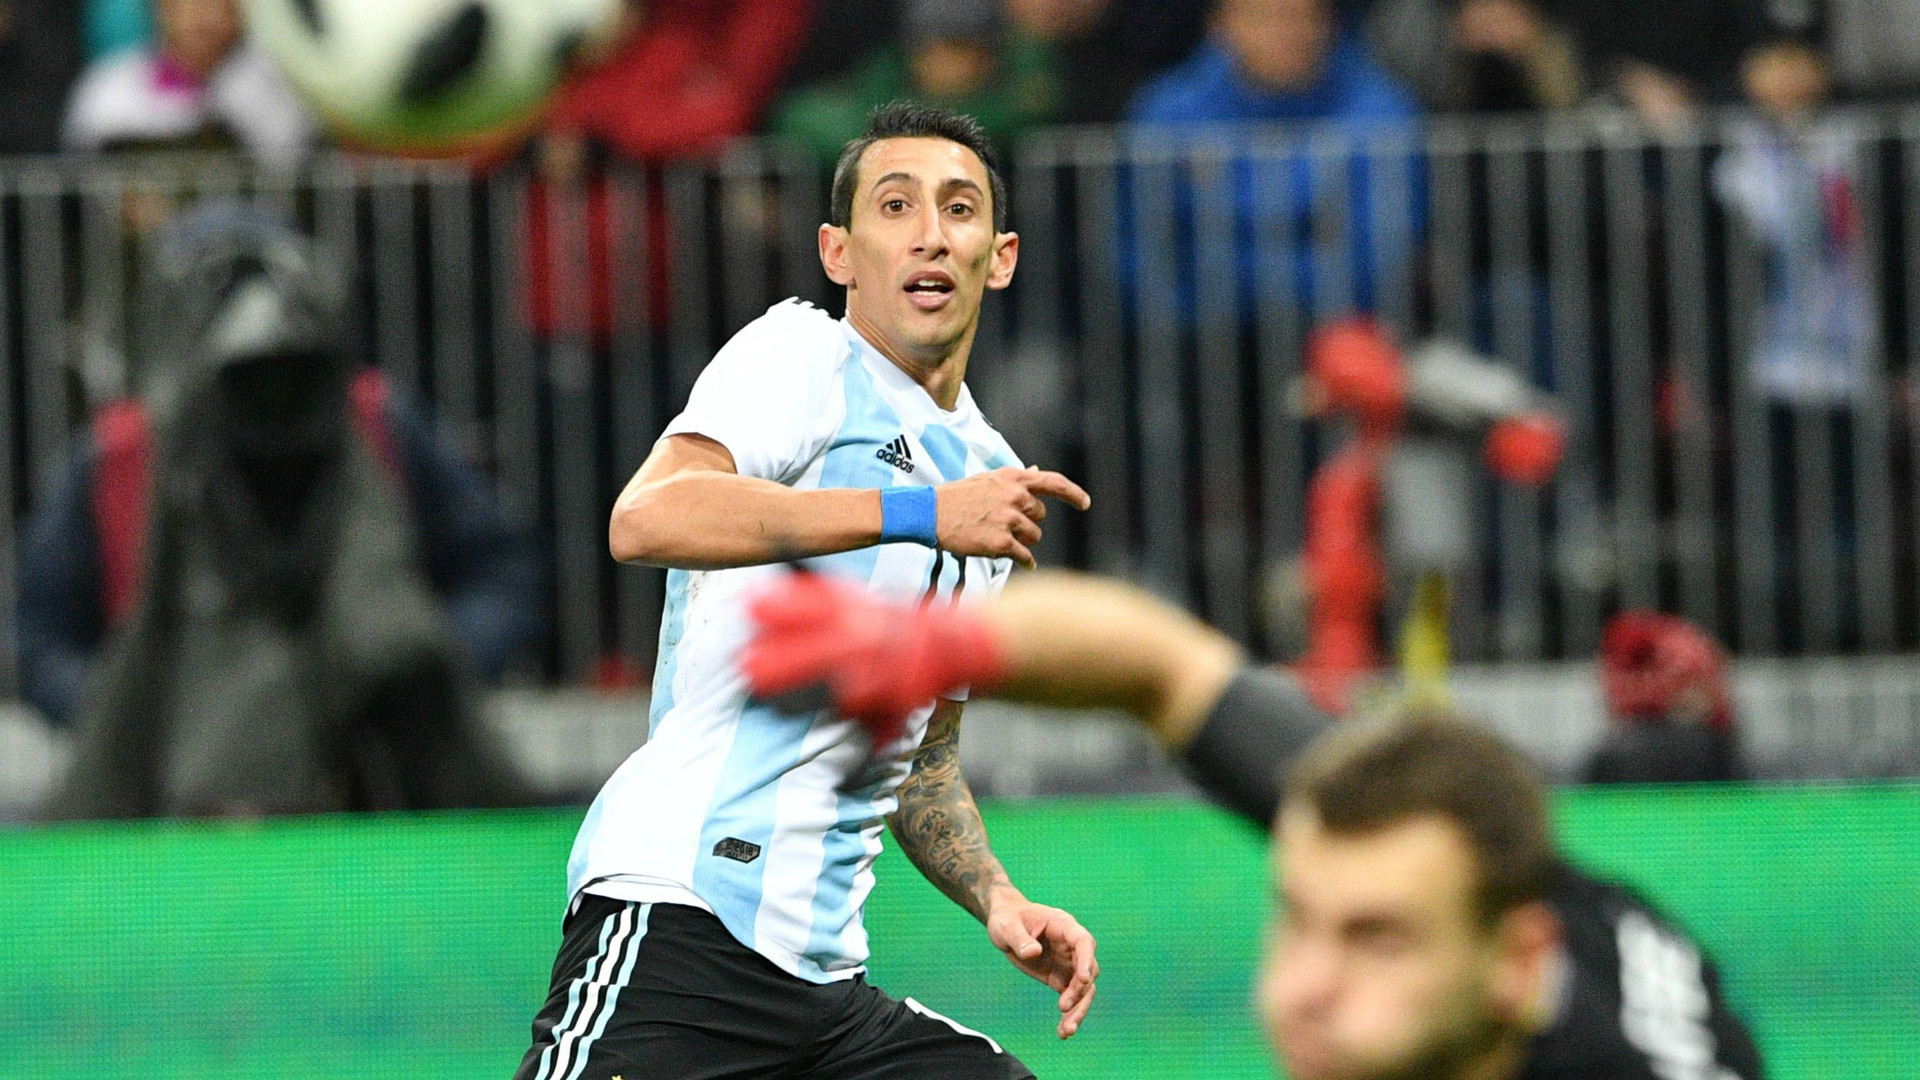 Nigeria Super Eagles defeat star-studded Argentina